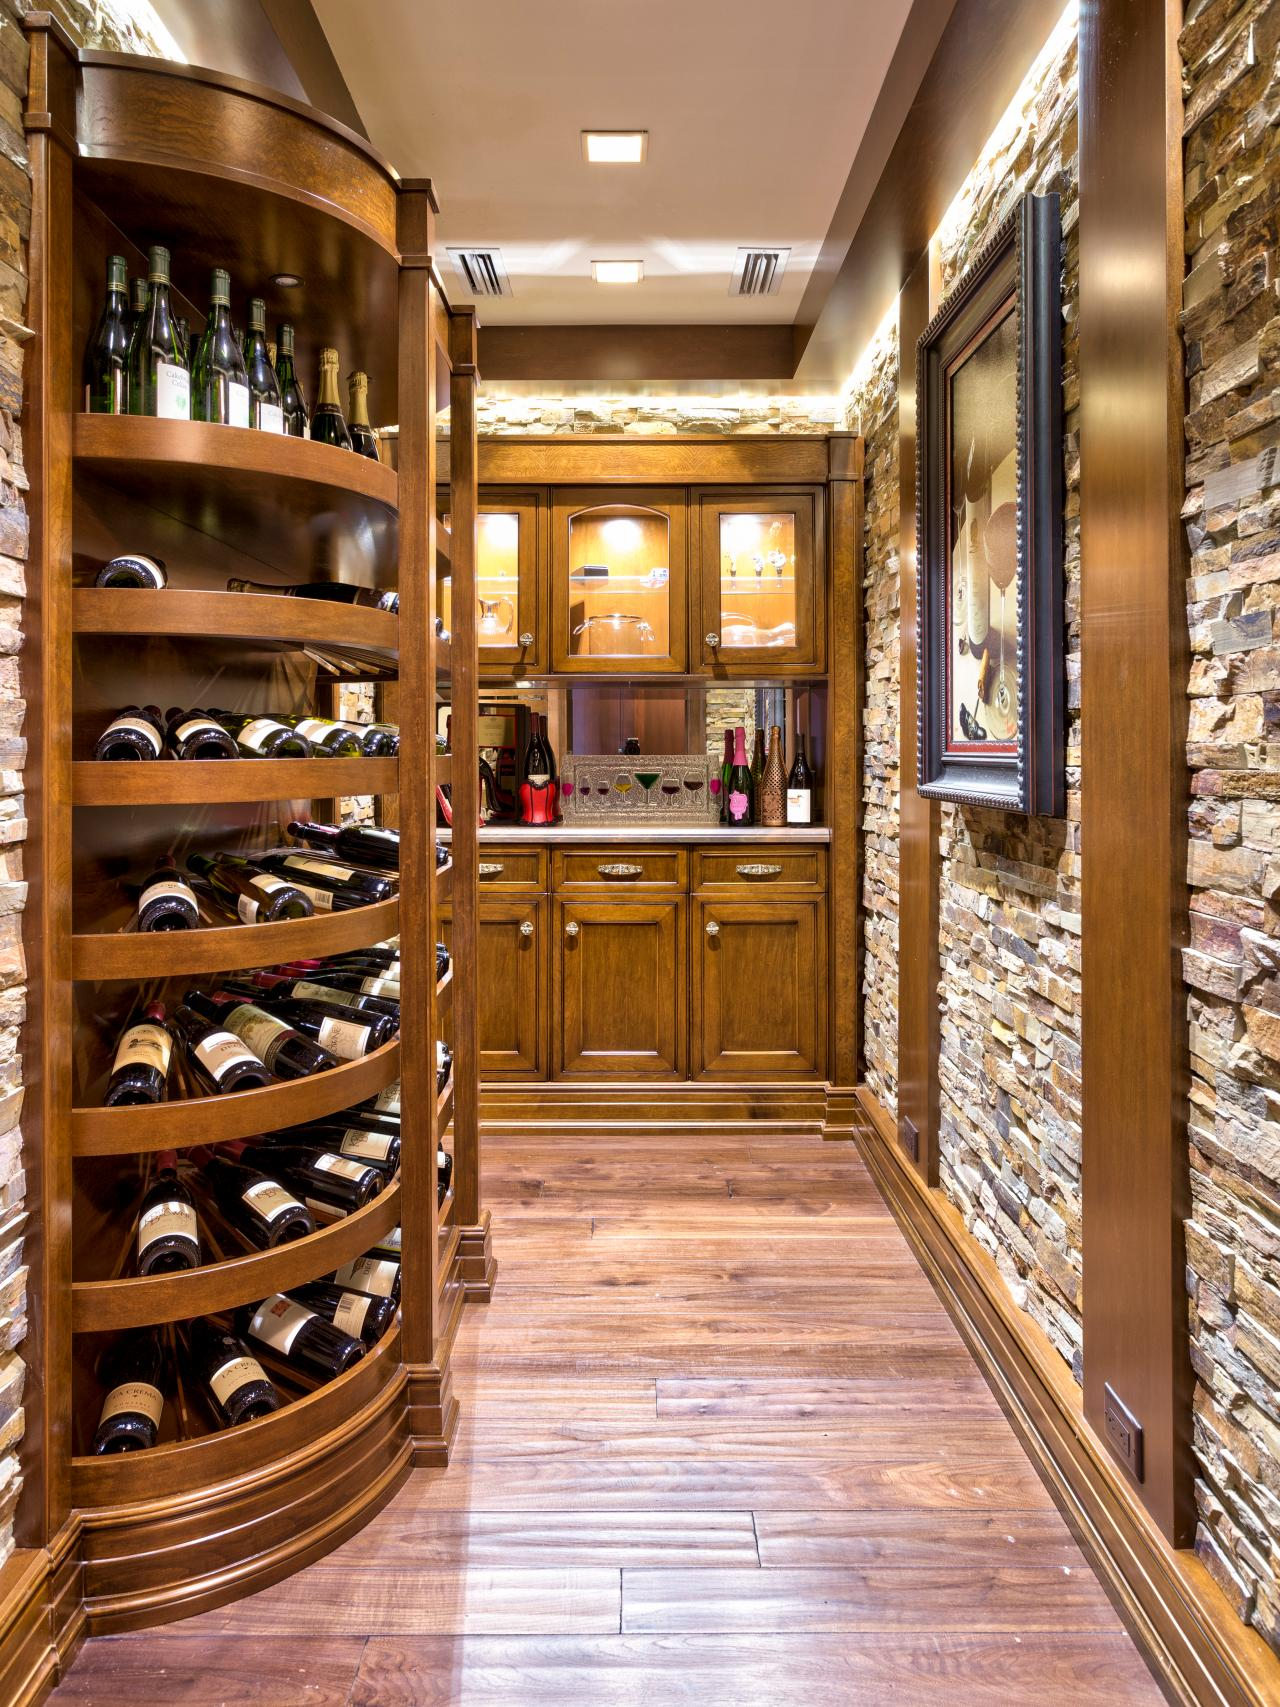 Wine cellar in a mountain retreat